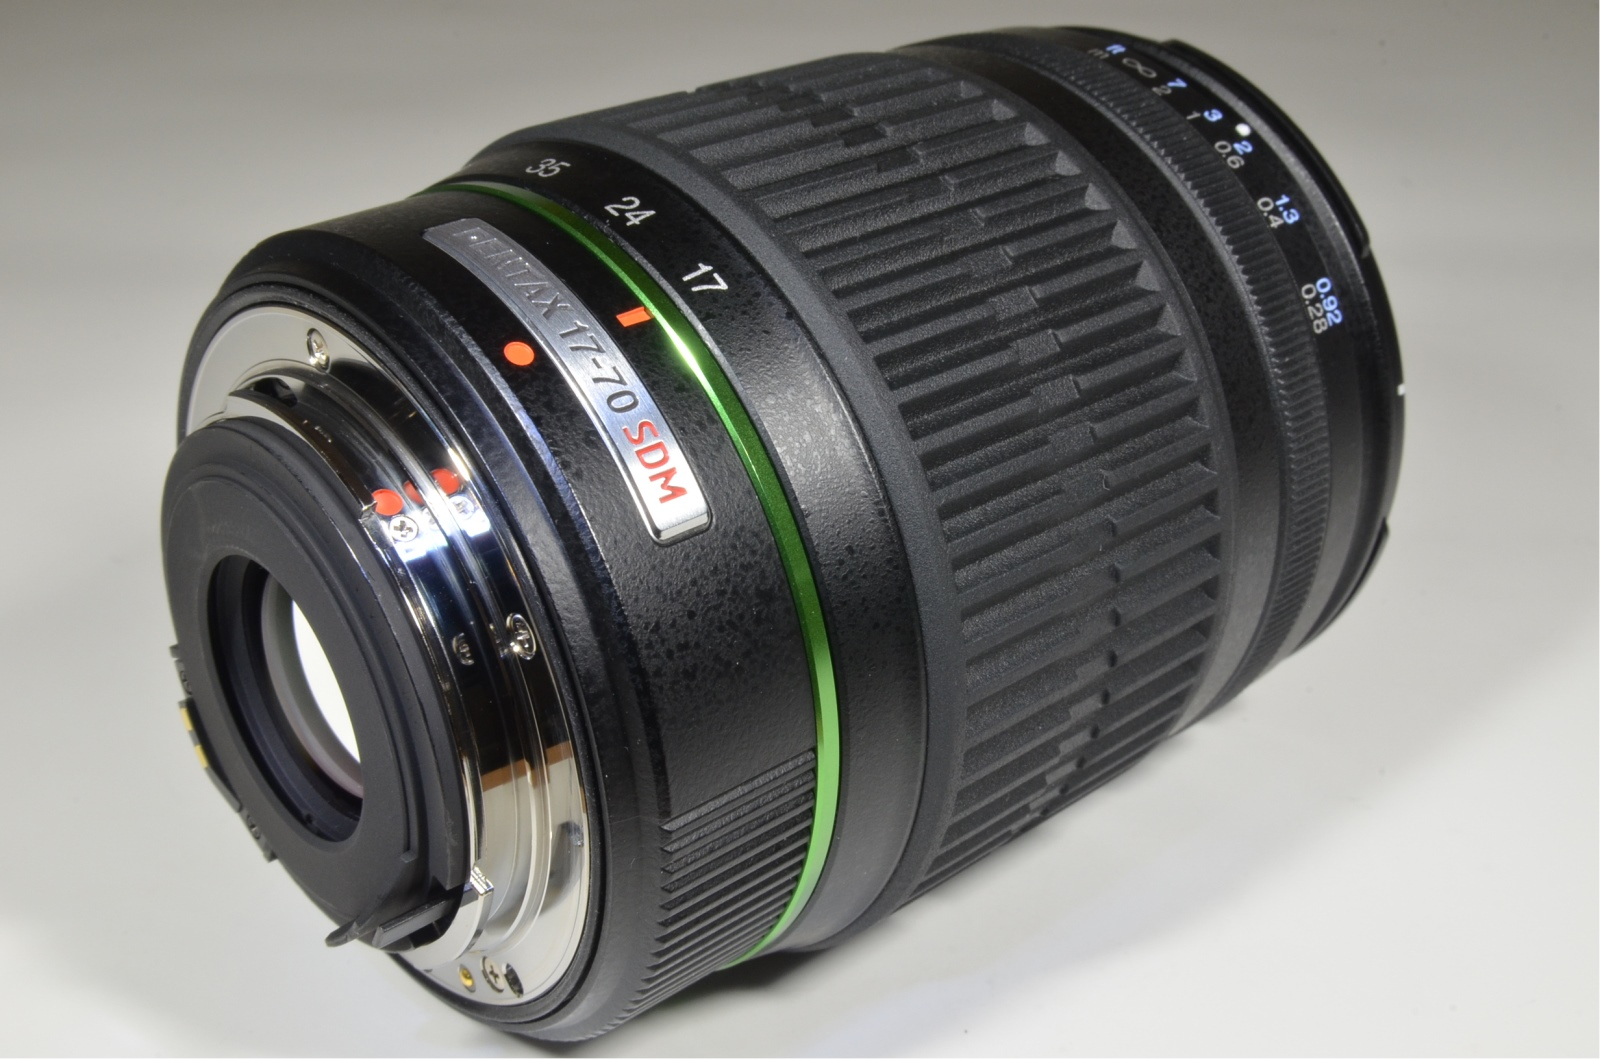 pentax smc da 17-70 mm f4 sdm if al